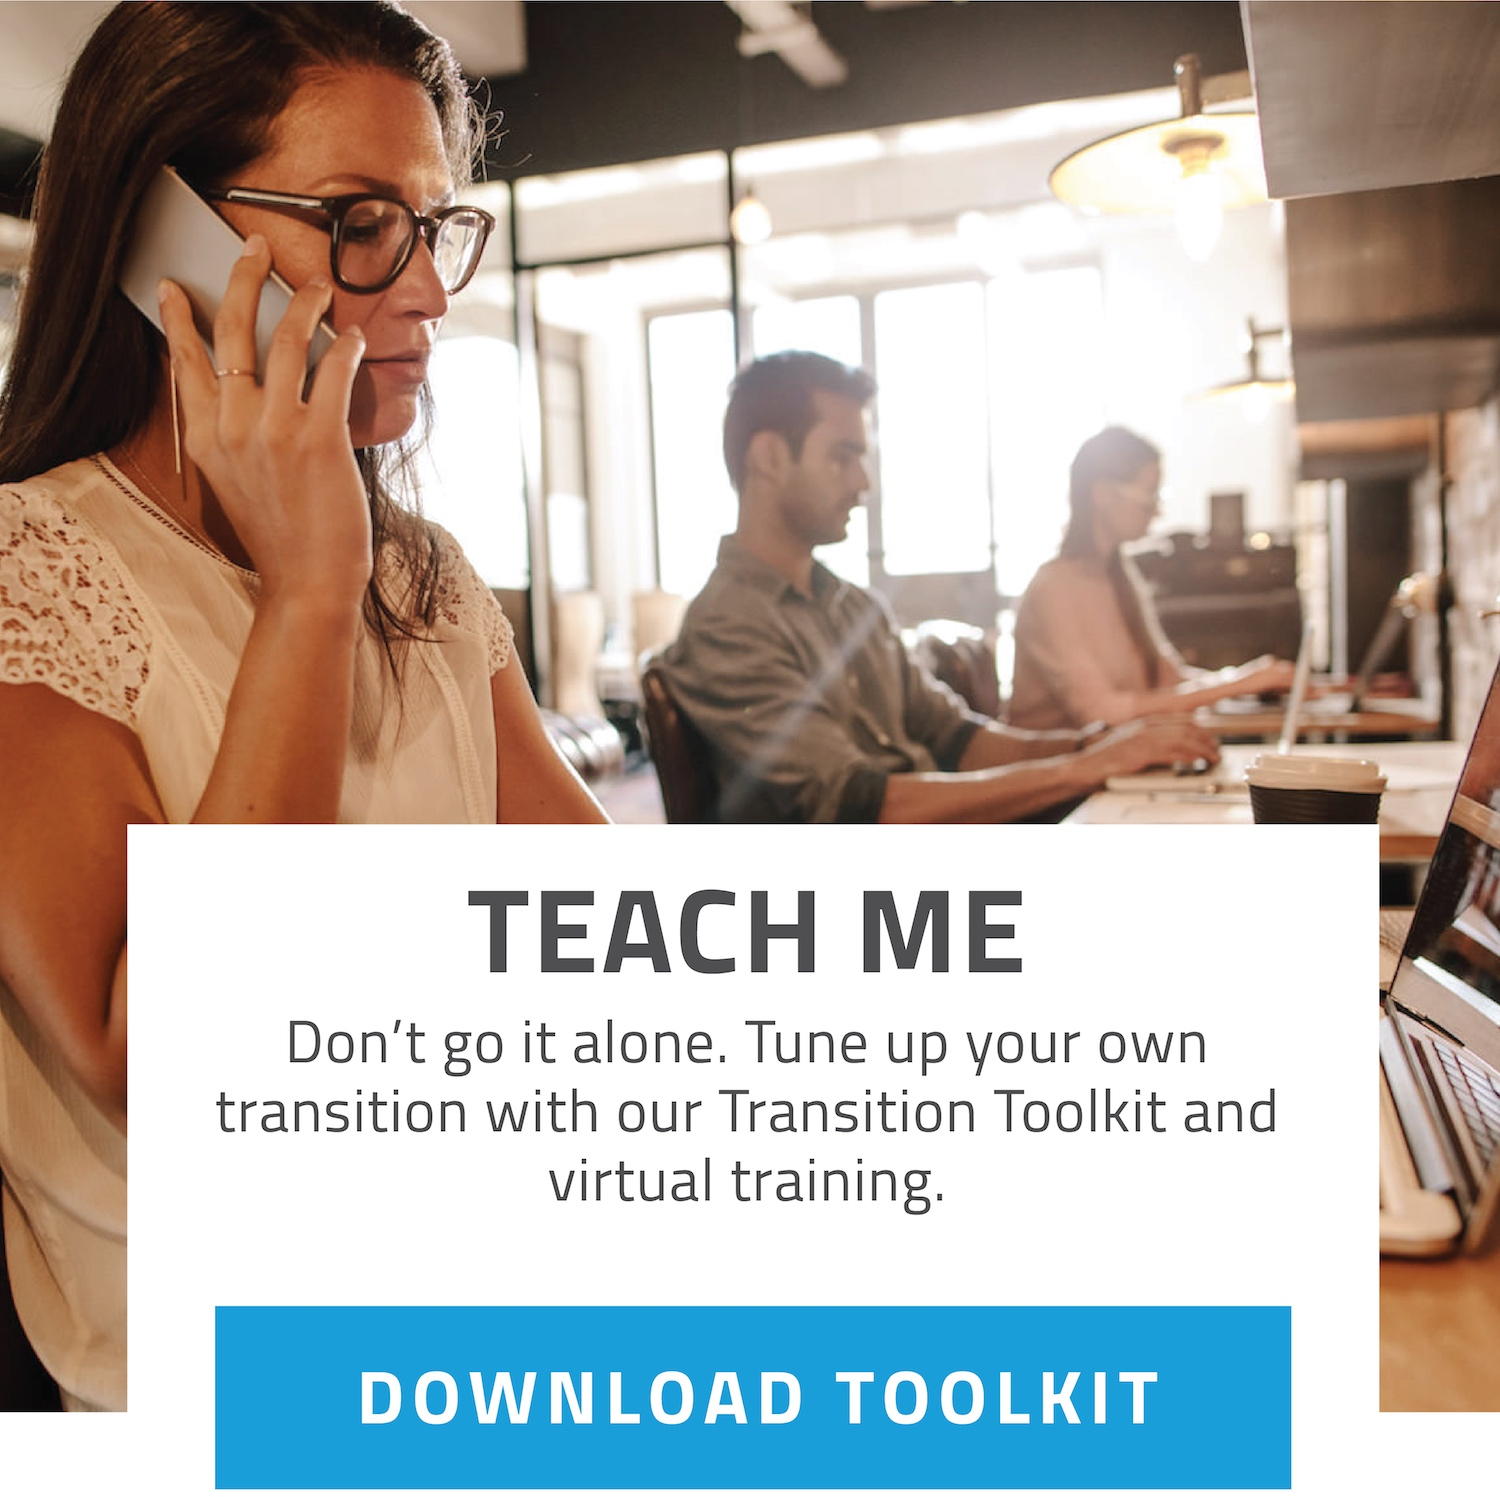 teach me includes our transition toolkit and virtual training.jpg